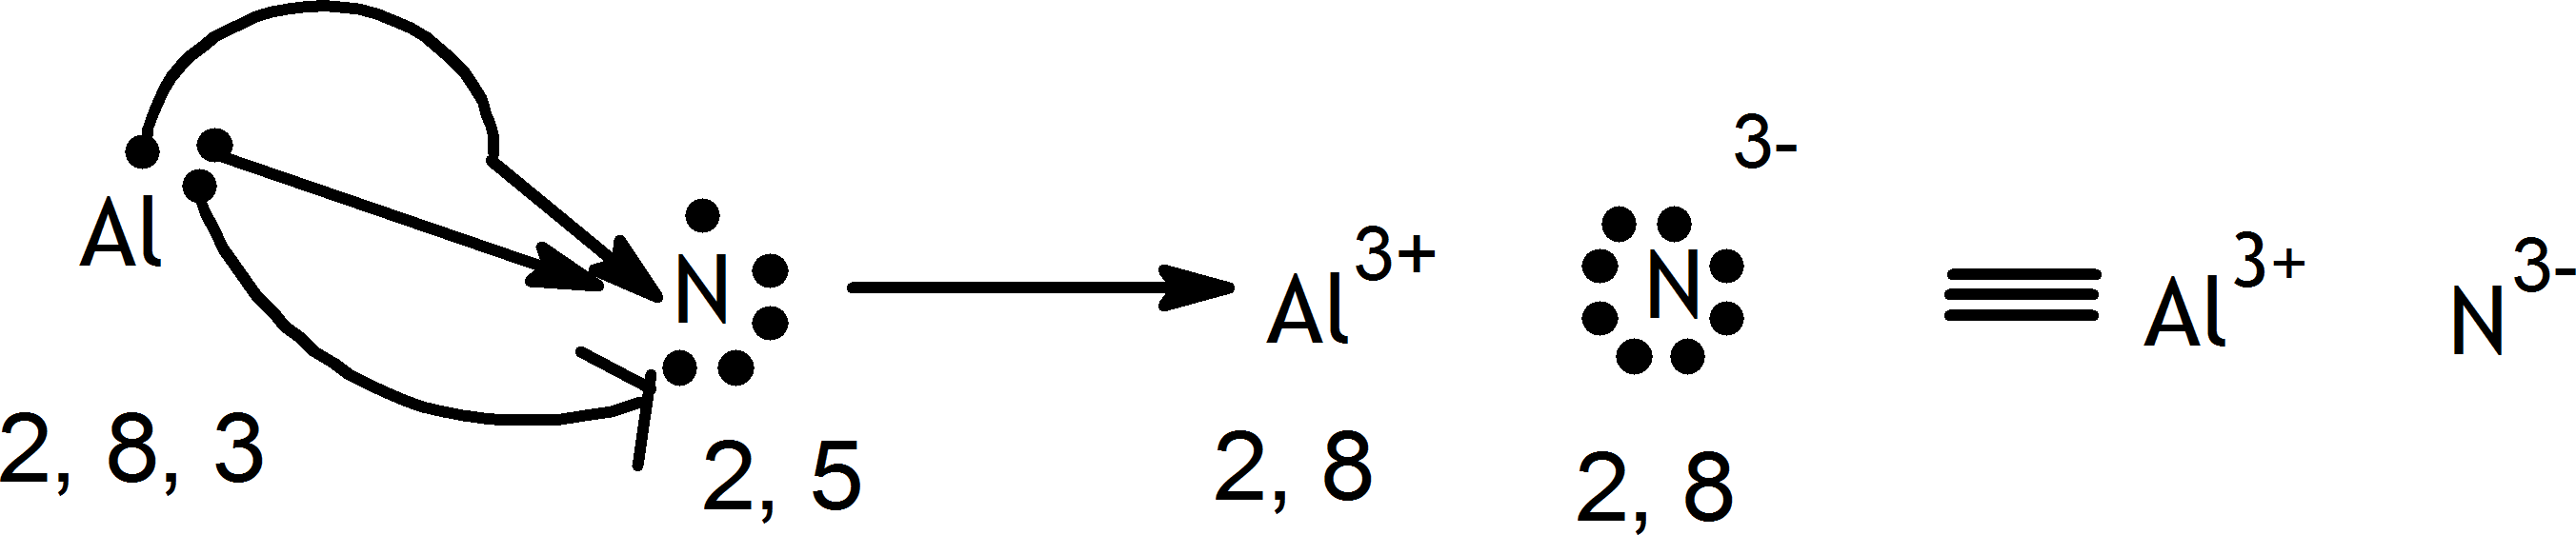 Image showing electron transfer of Al and N